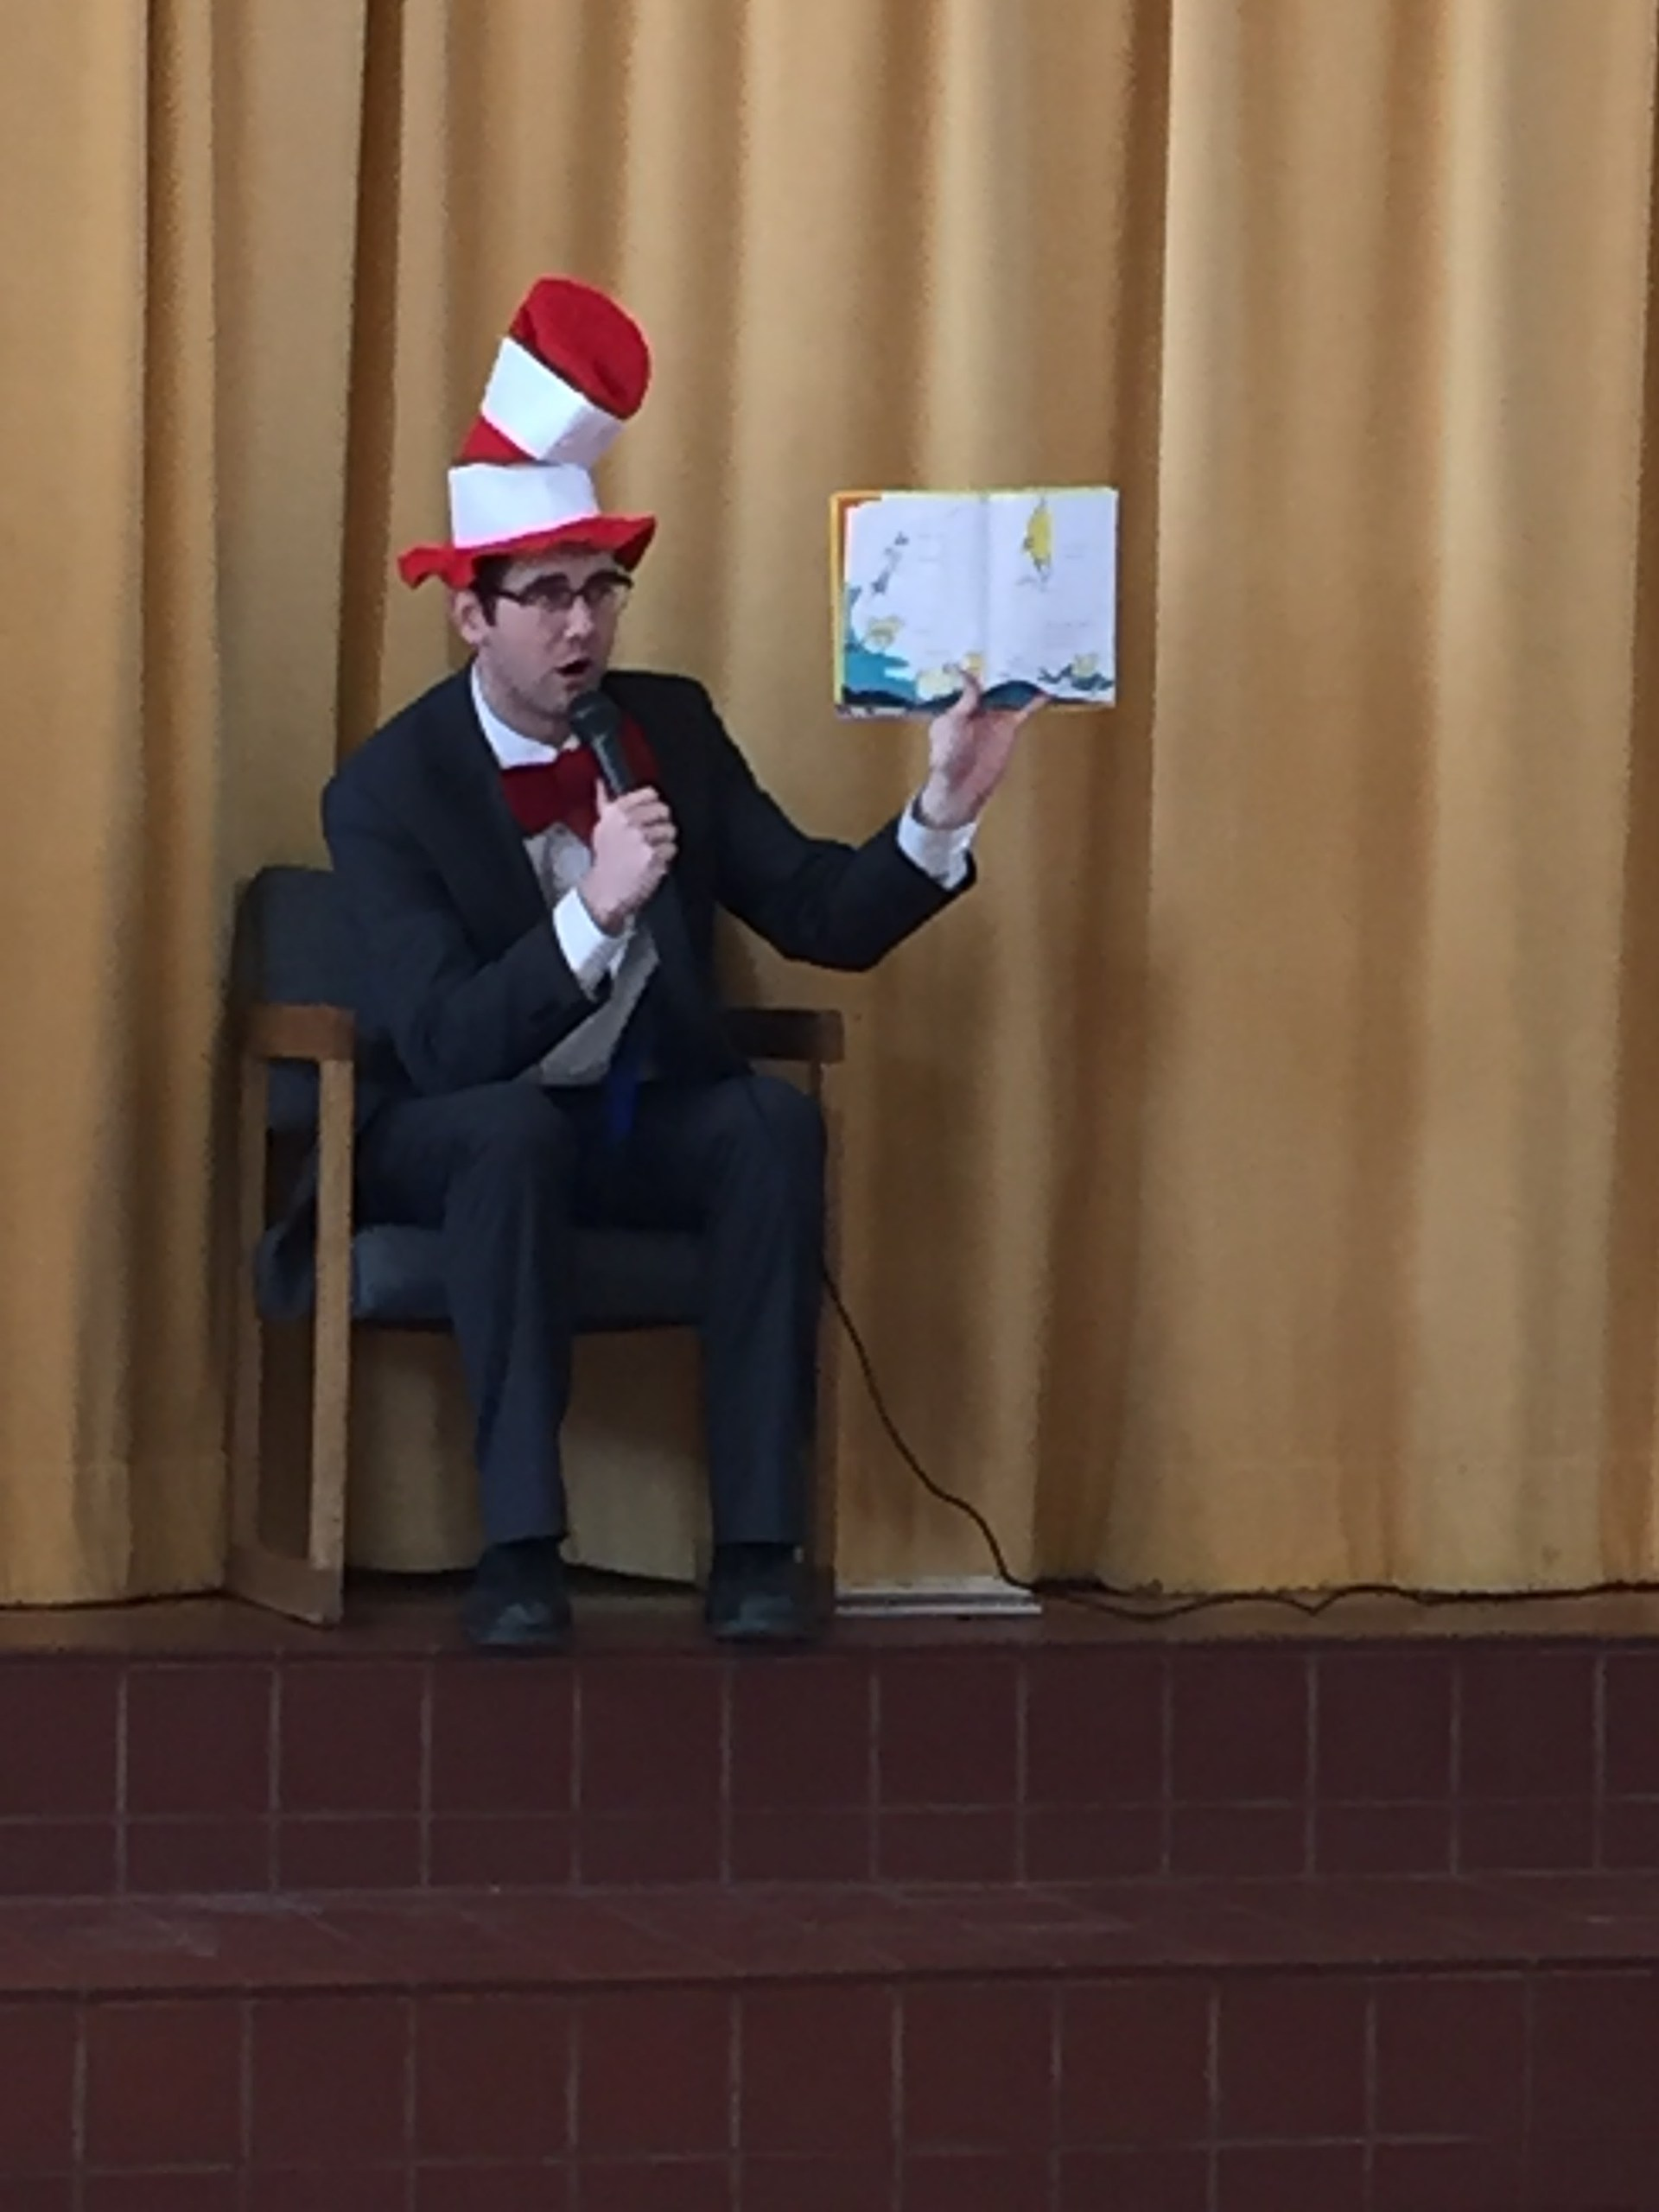 Mr. Poole Cat in the Hat